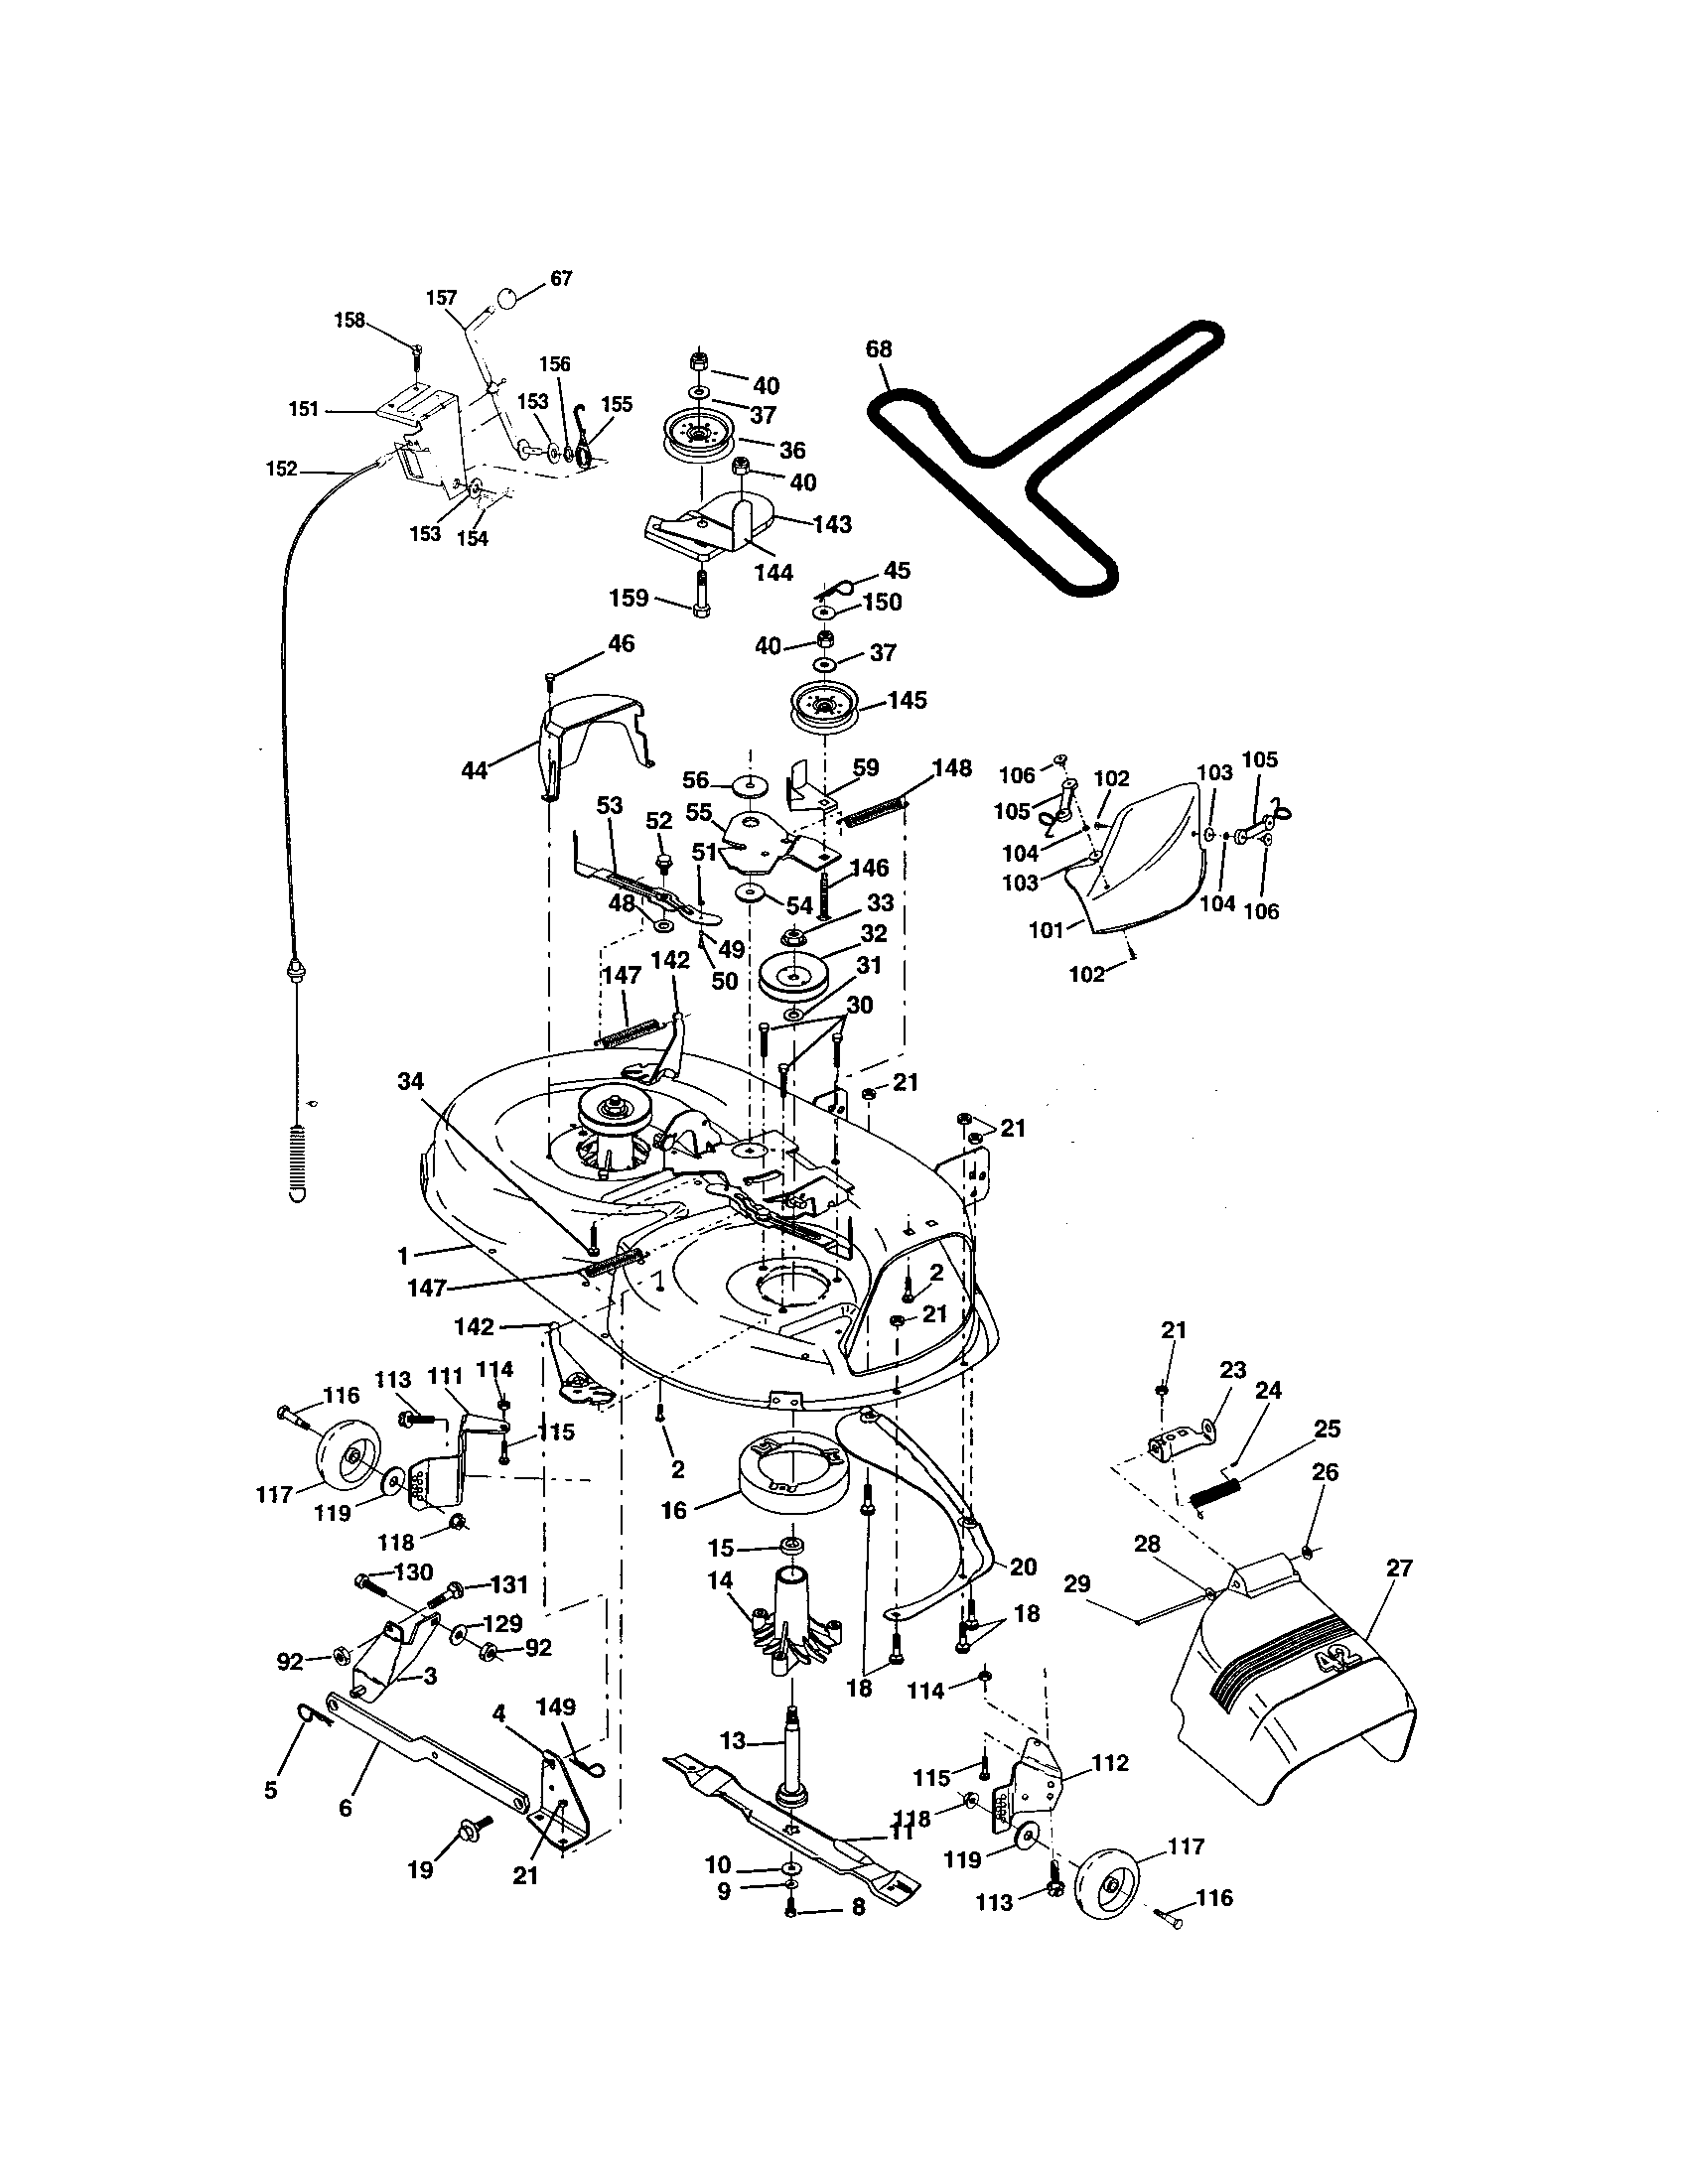 MOWER DECK Diagram & Parts List for Model 917271760